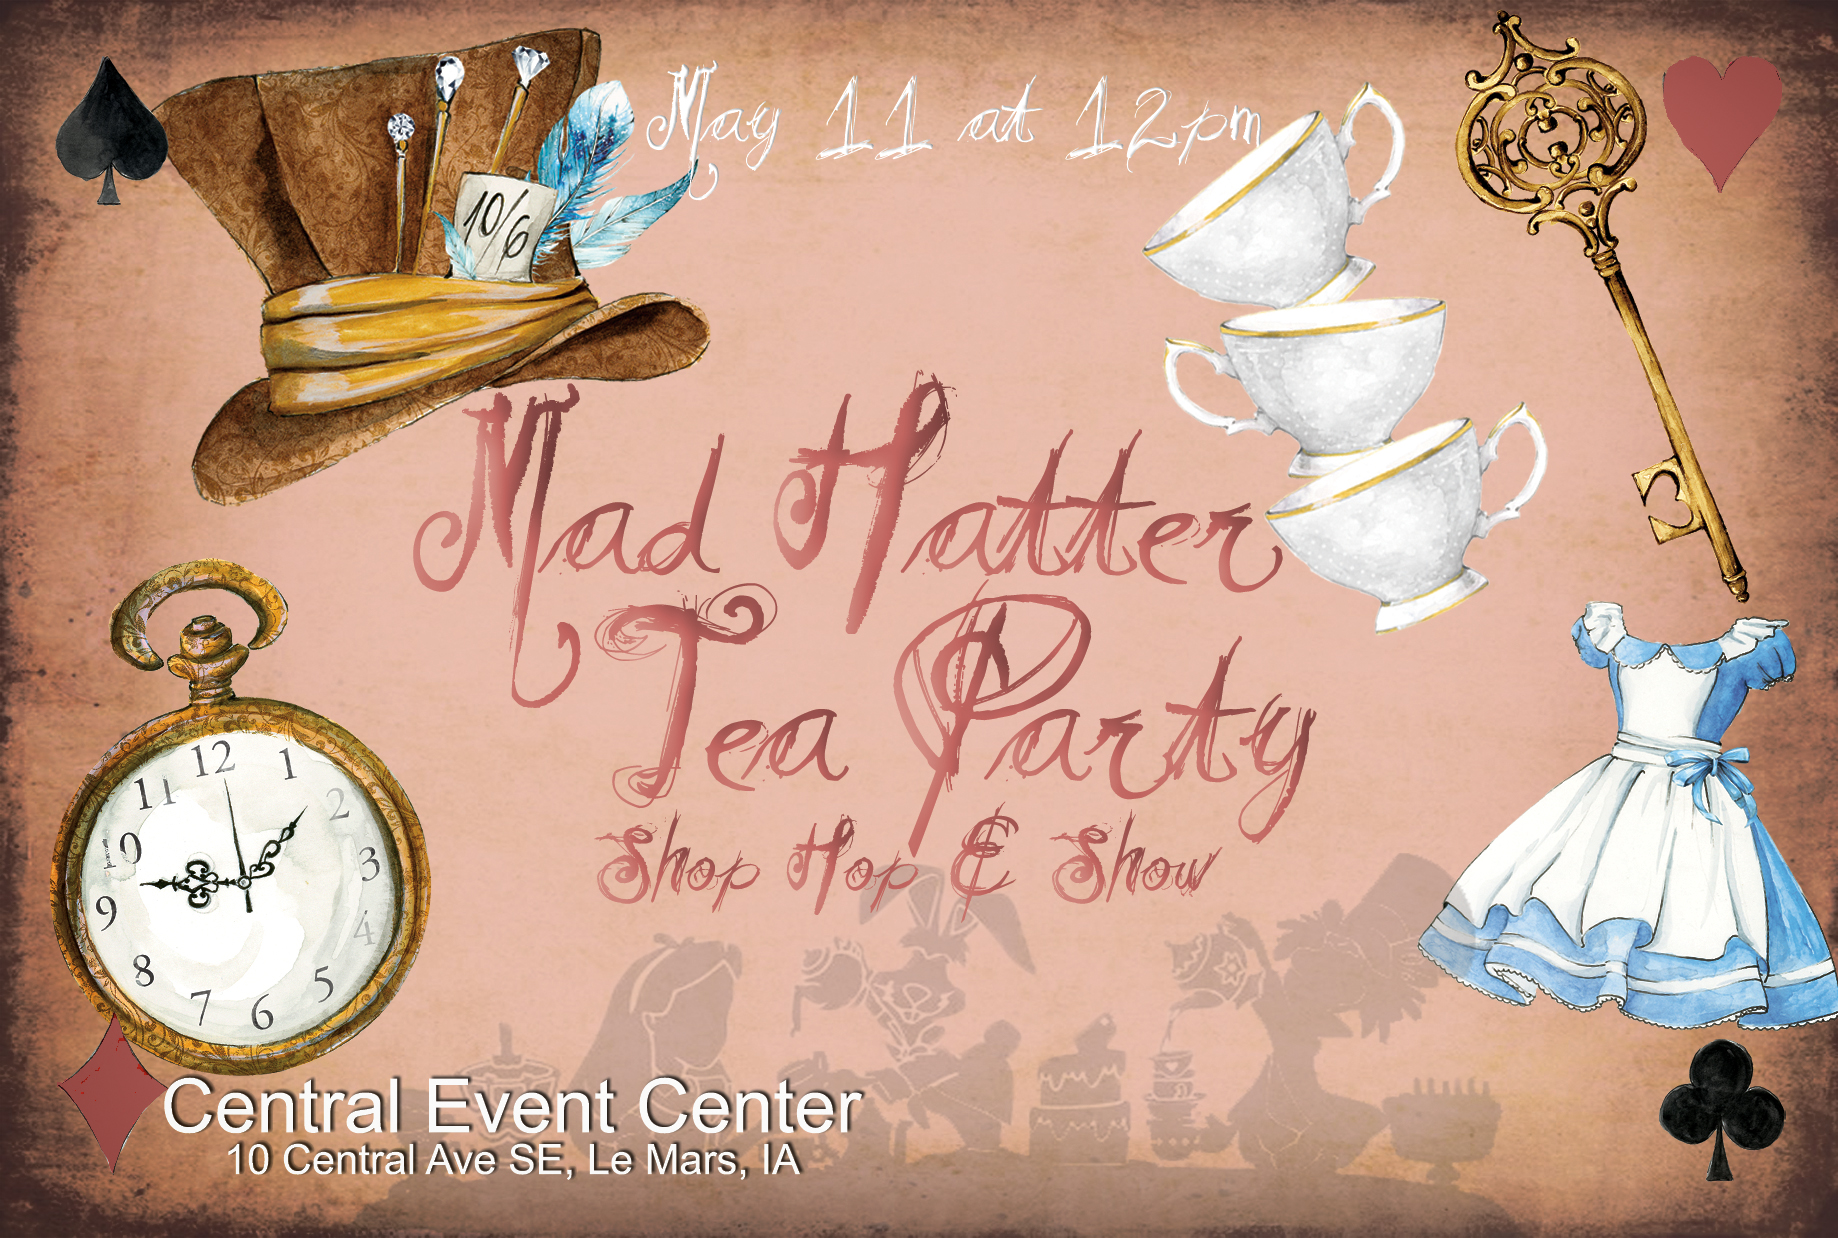 Mad Hatter Tea Party, Shop Hop, & Show